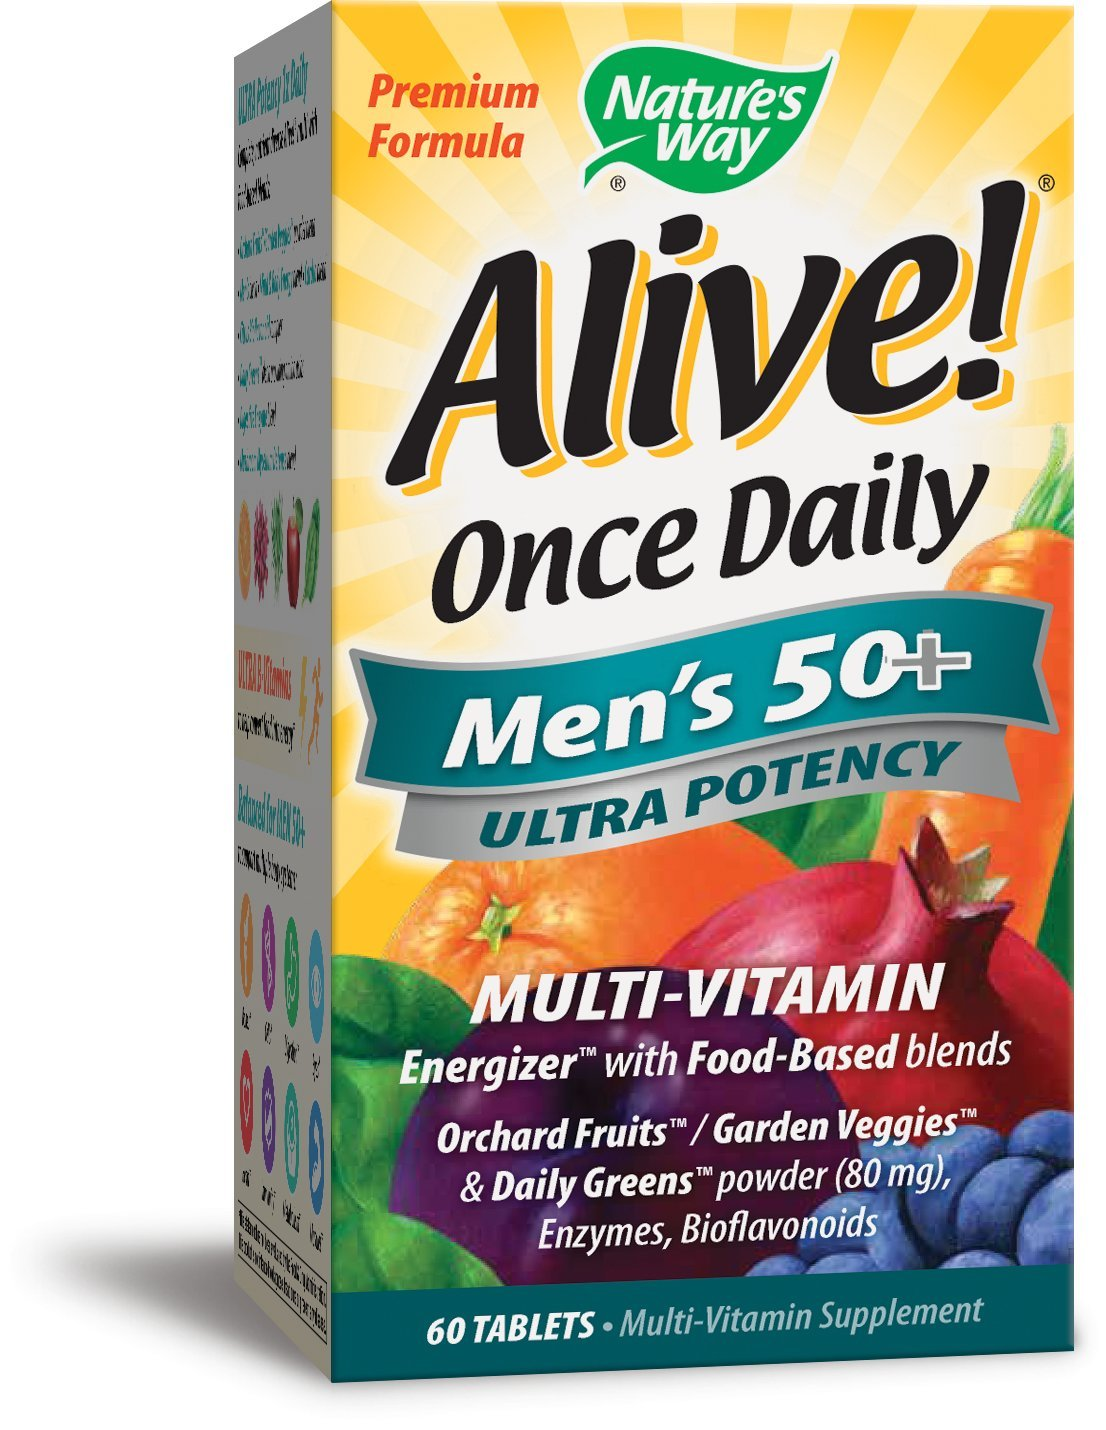 Nature's Way Alive Once Daily Men's 50 Plus Multi Ultra Potency Tablets, 60 Count